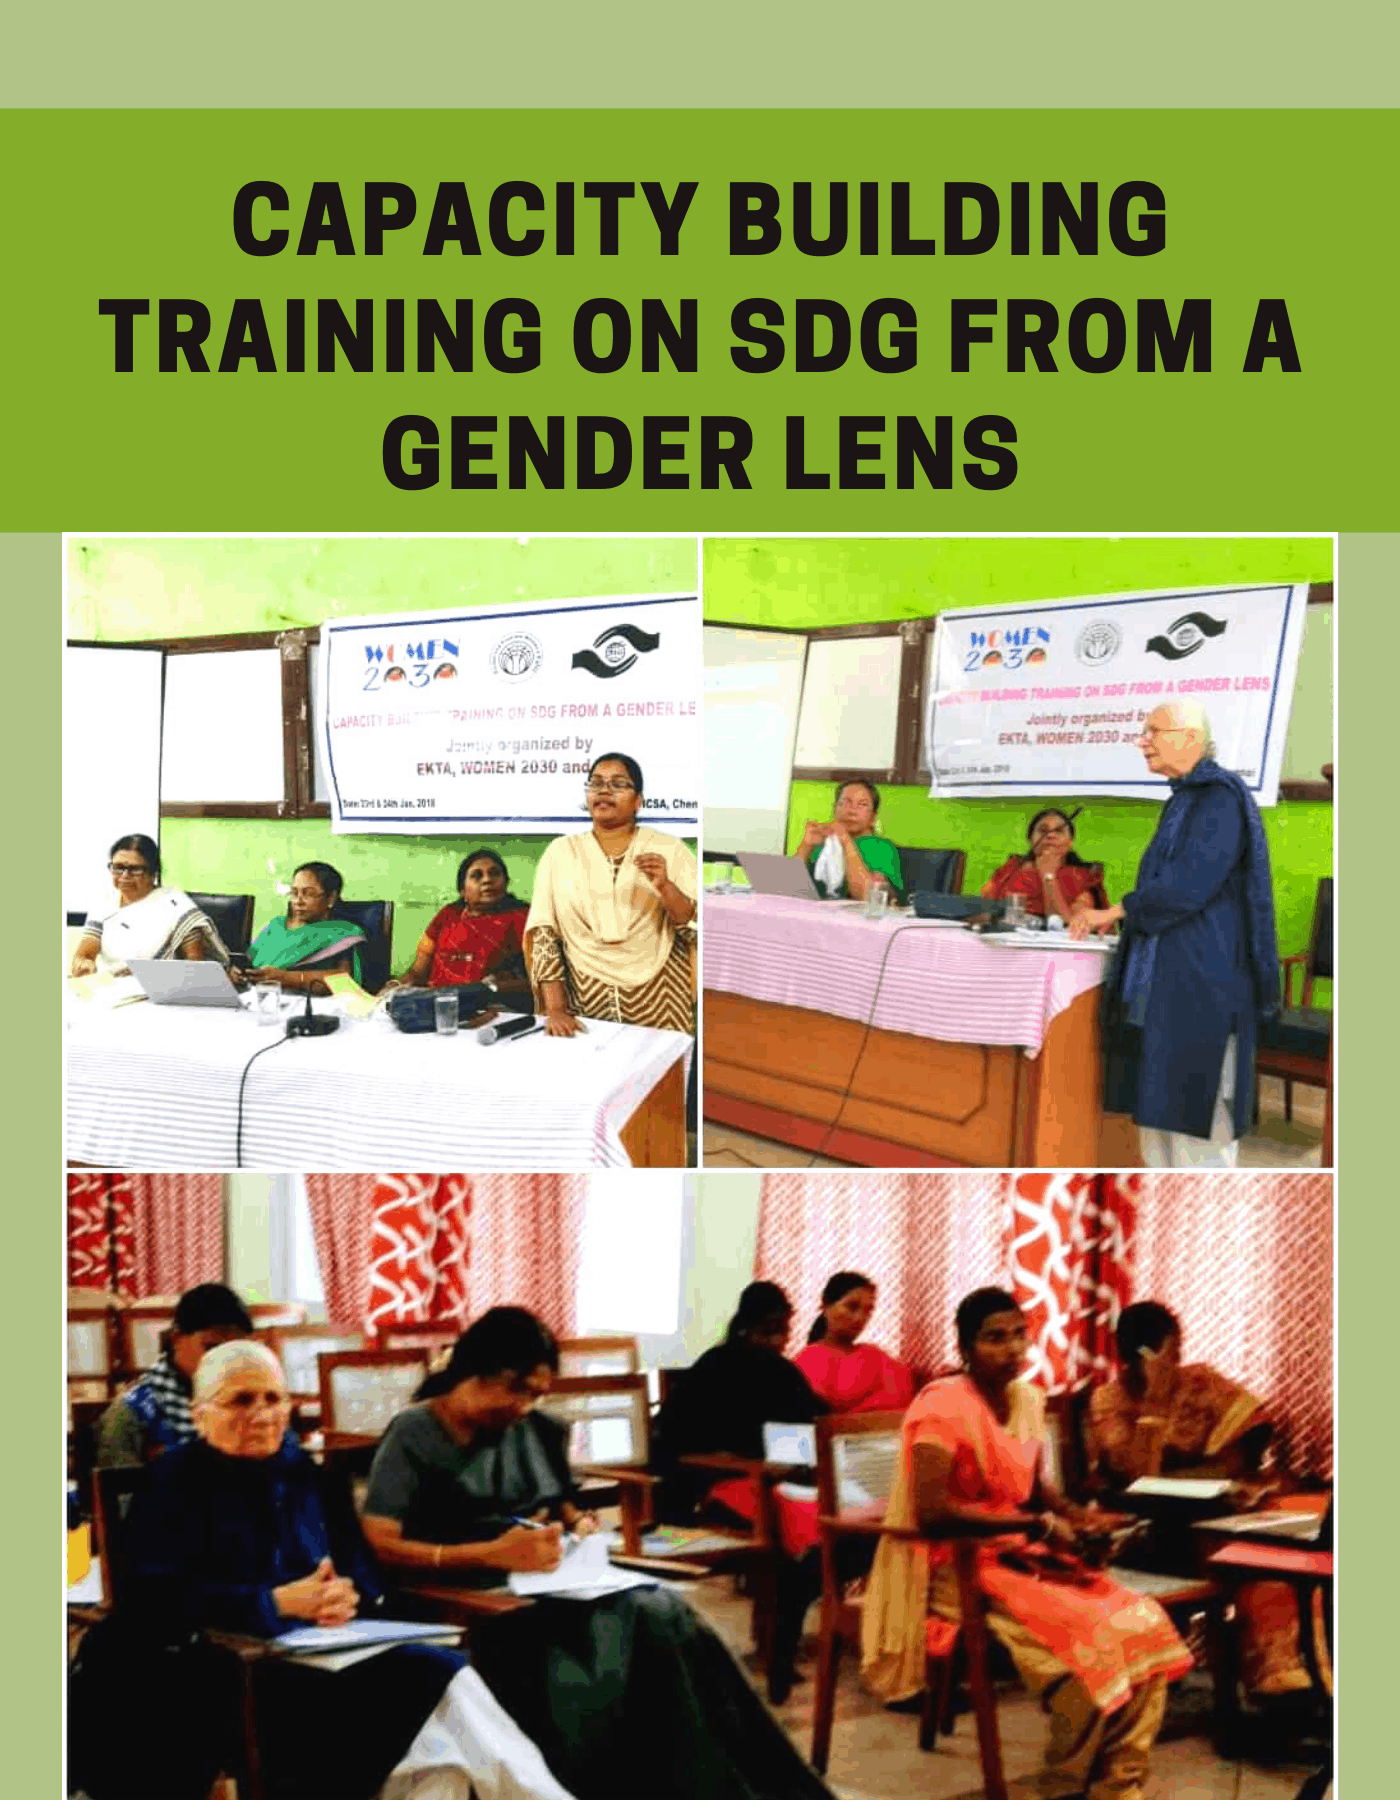 Capacity Building Training on SDG from a Gender Lens